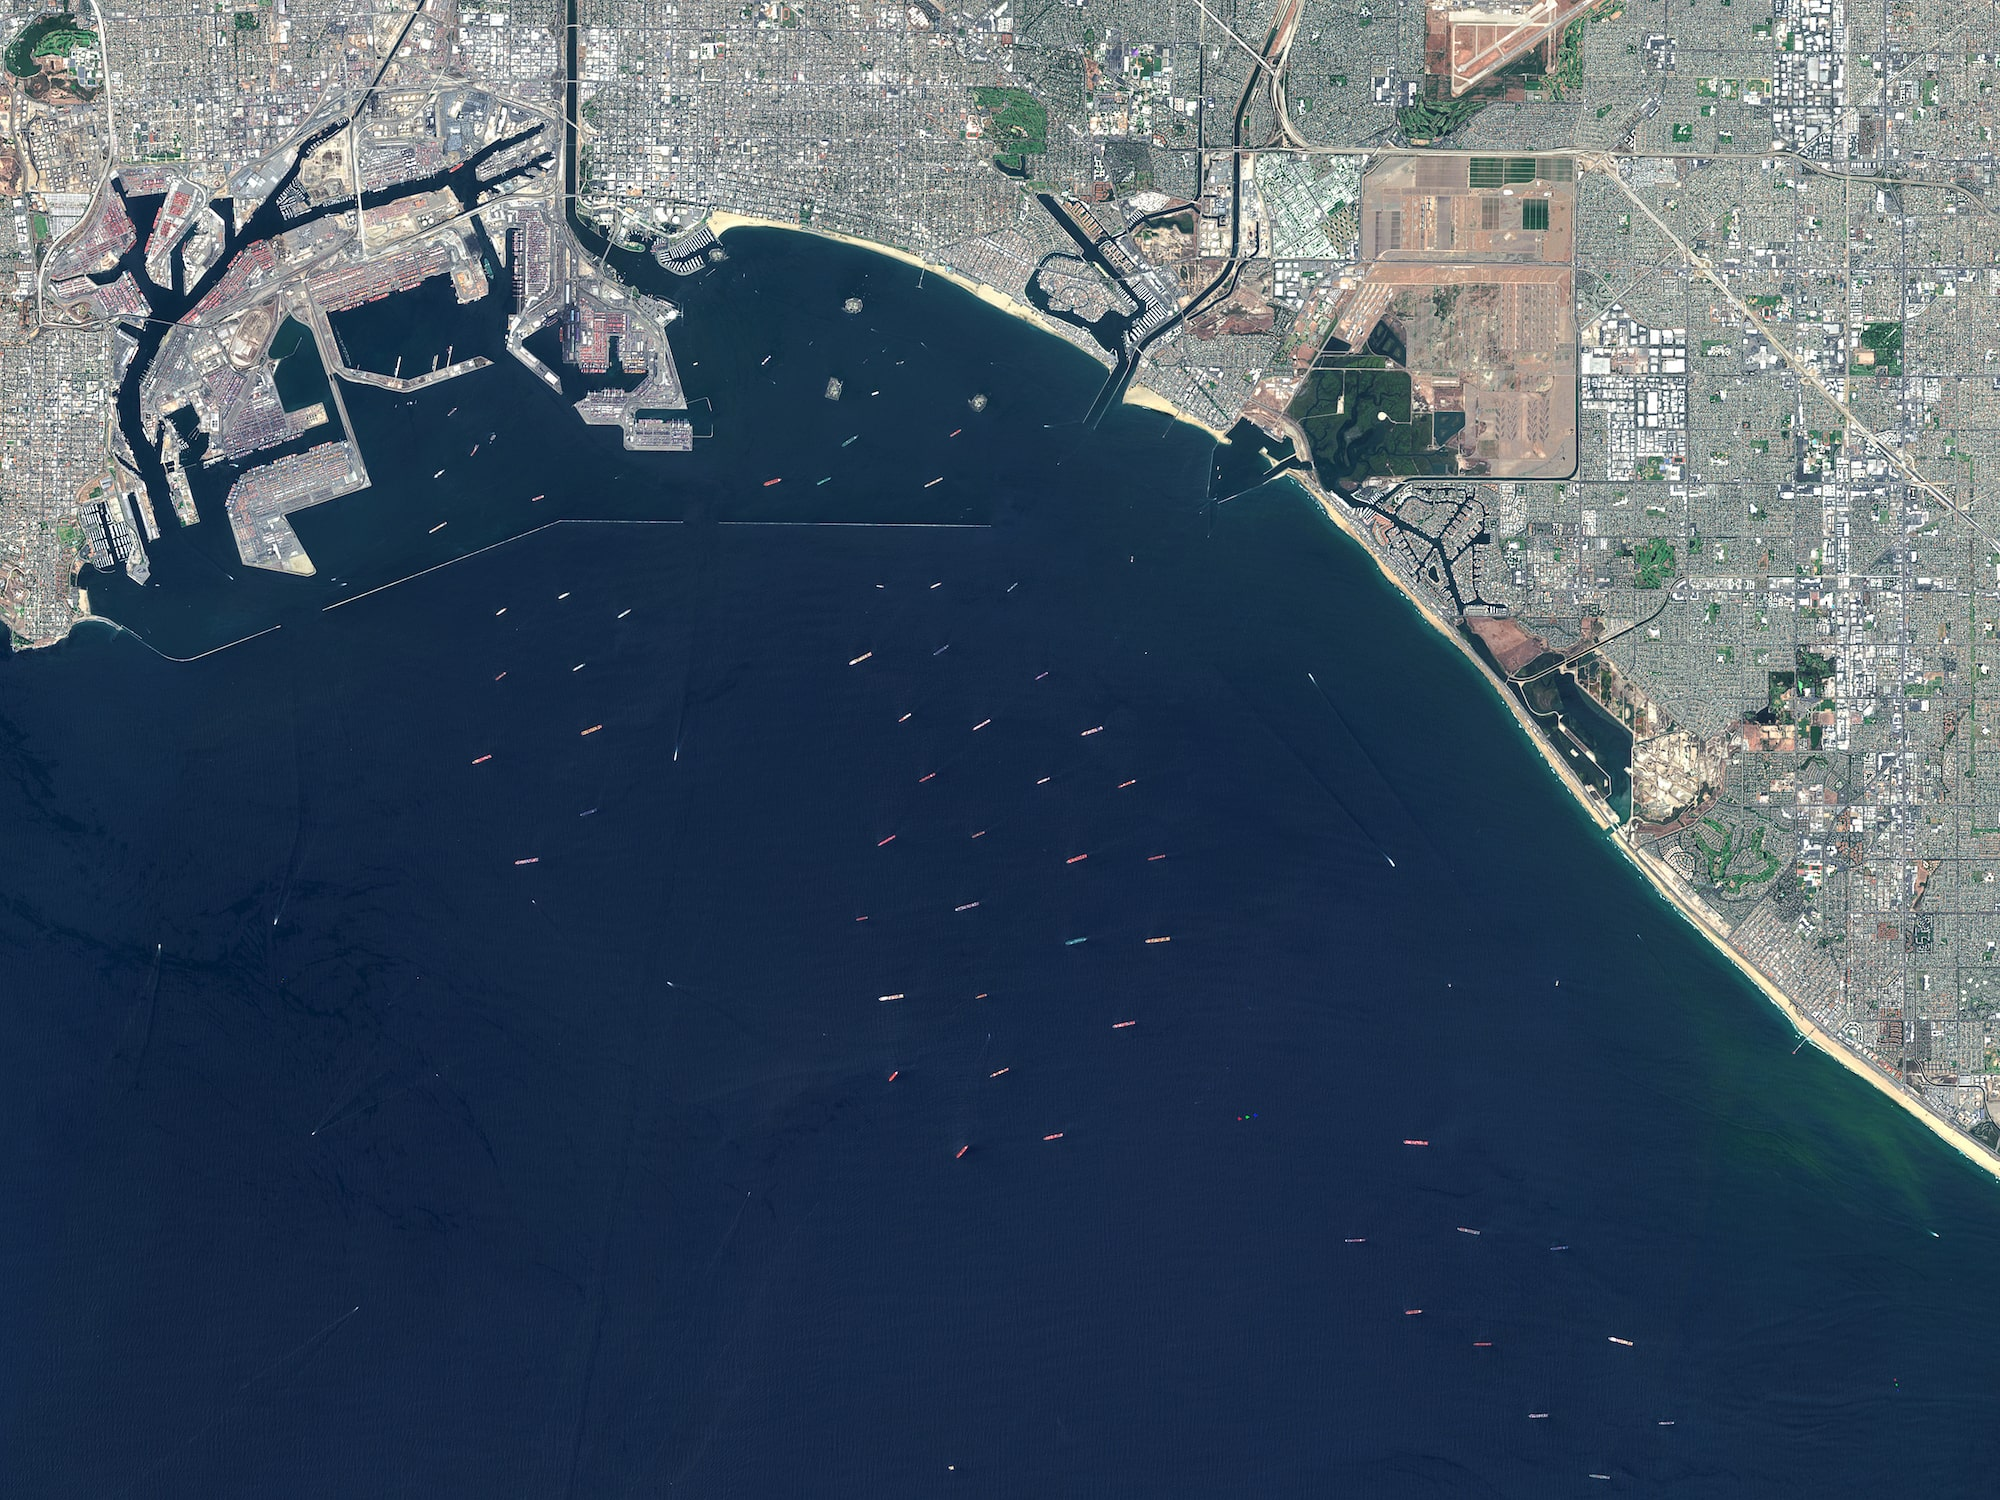 a satellite view of the port of Los Angeles with many cargo ships out at sea